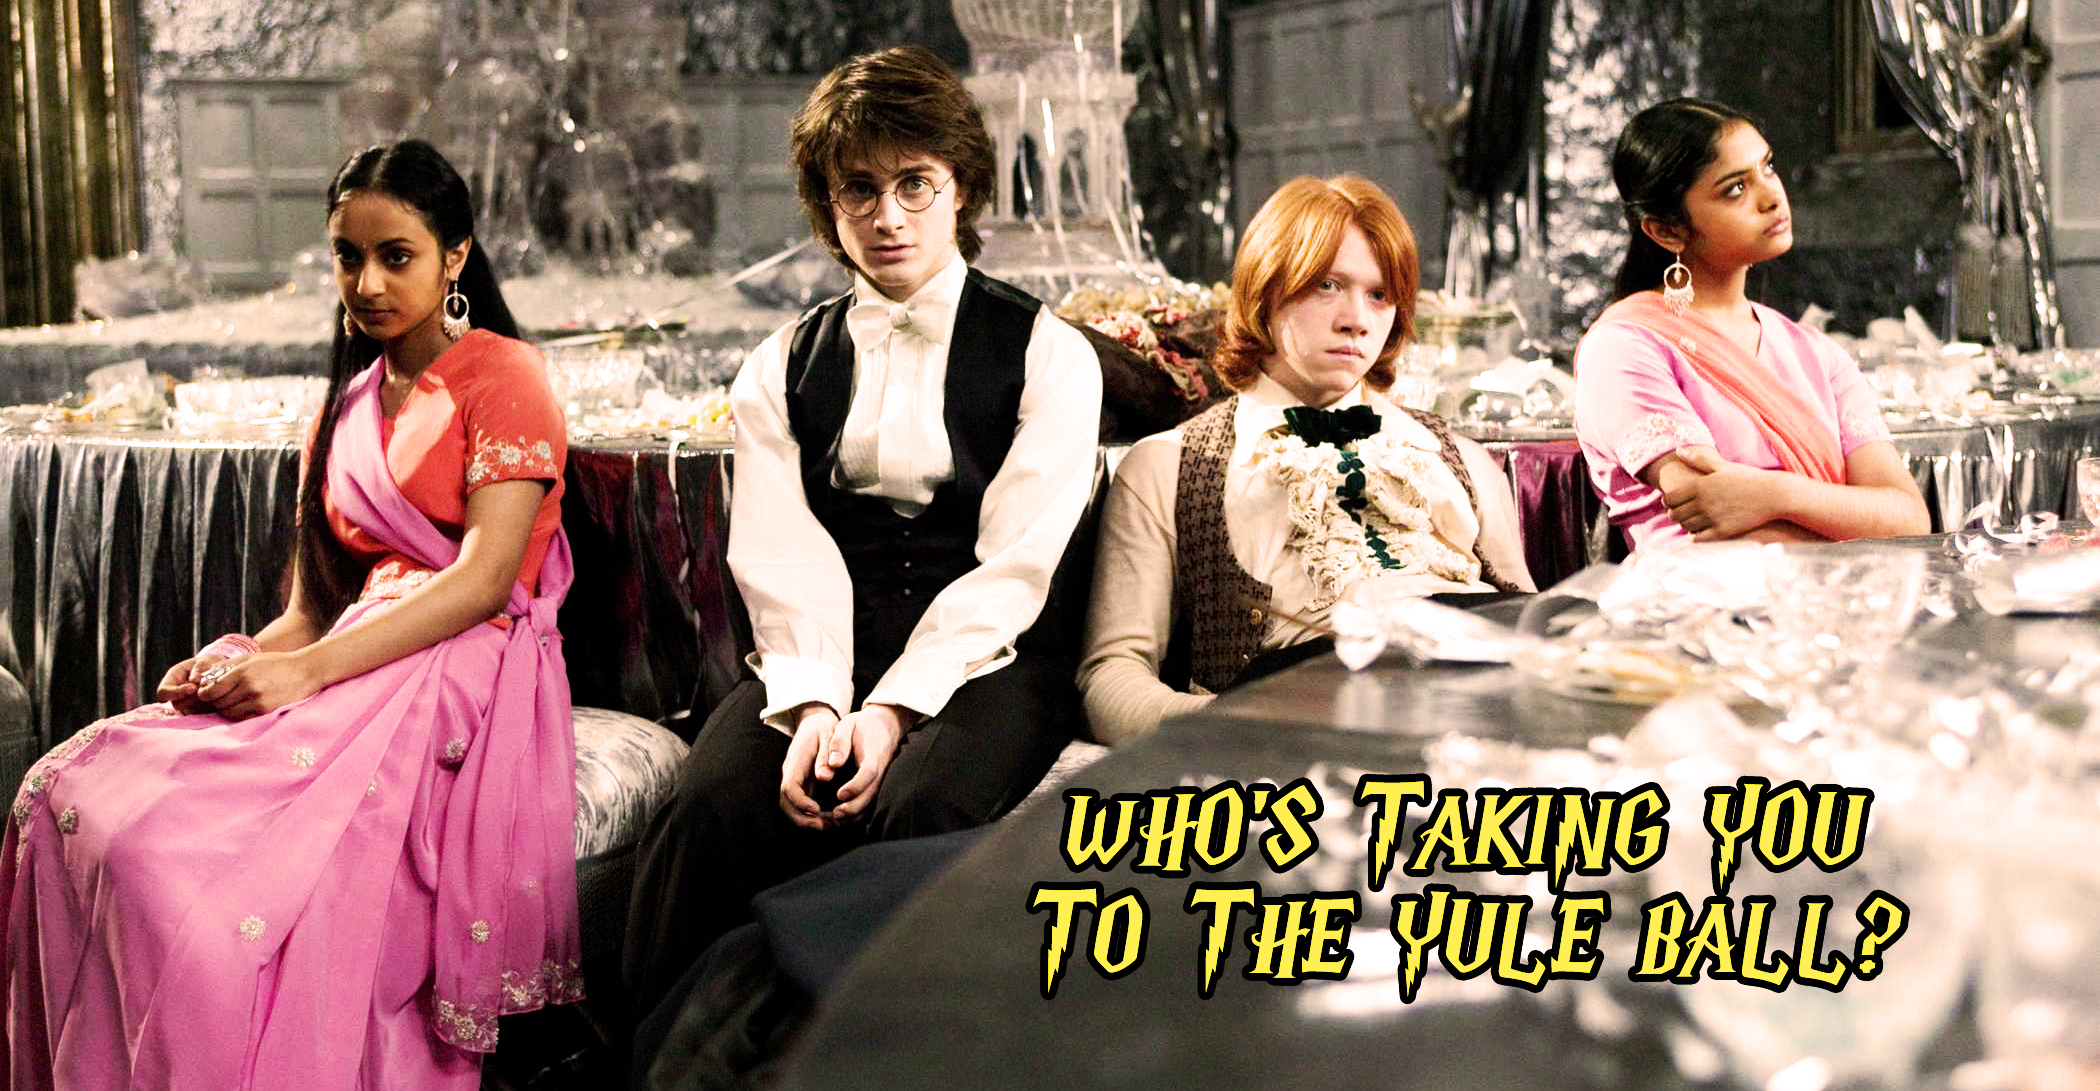 Harry Potter: Which Character Is Taking You To The Yule Ball?